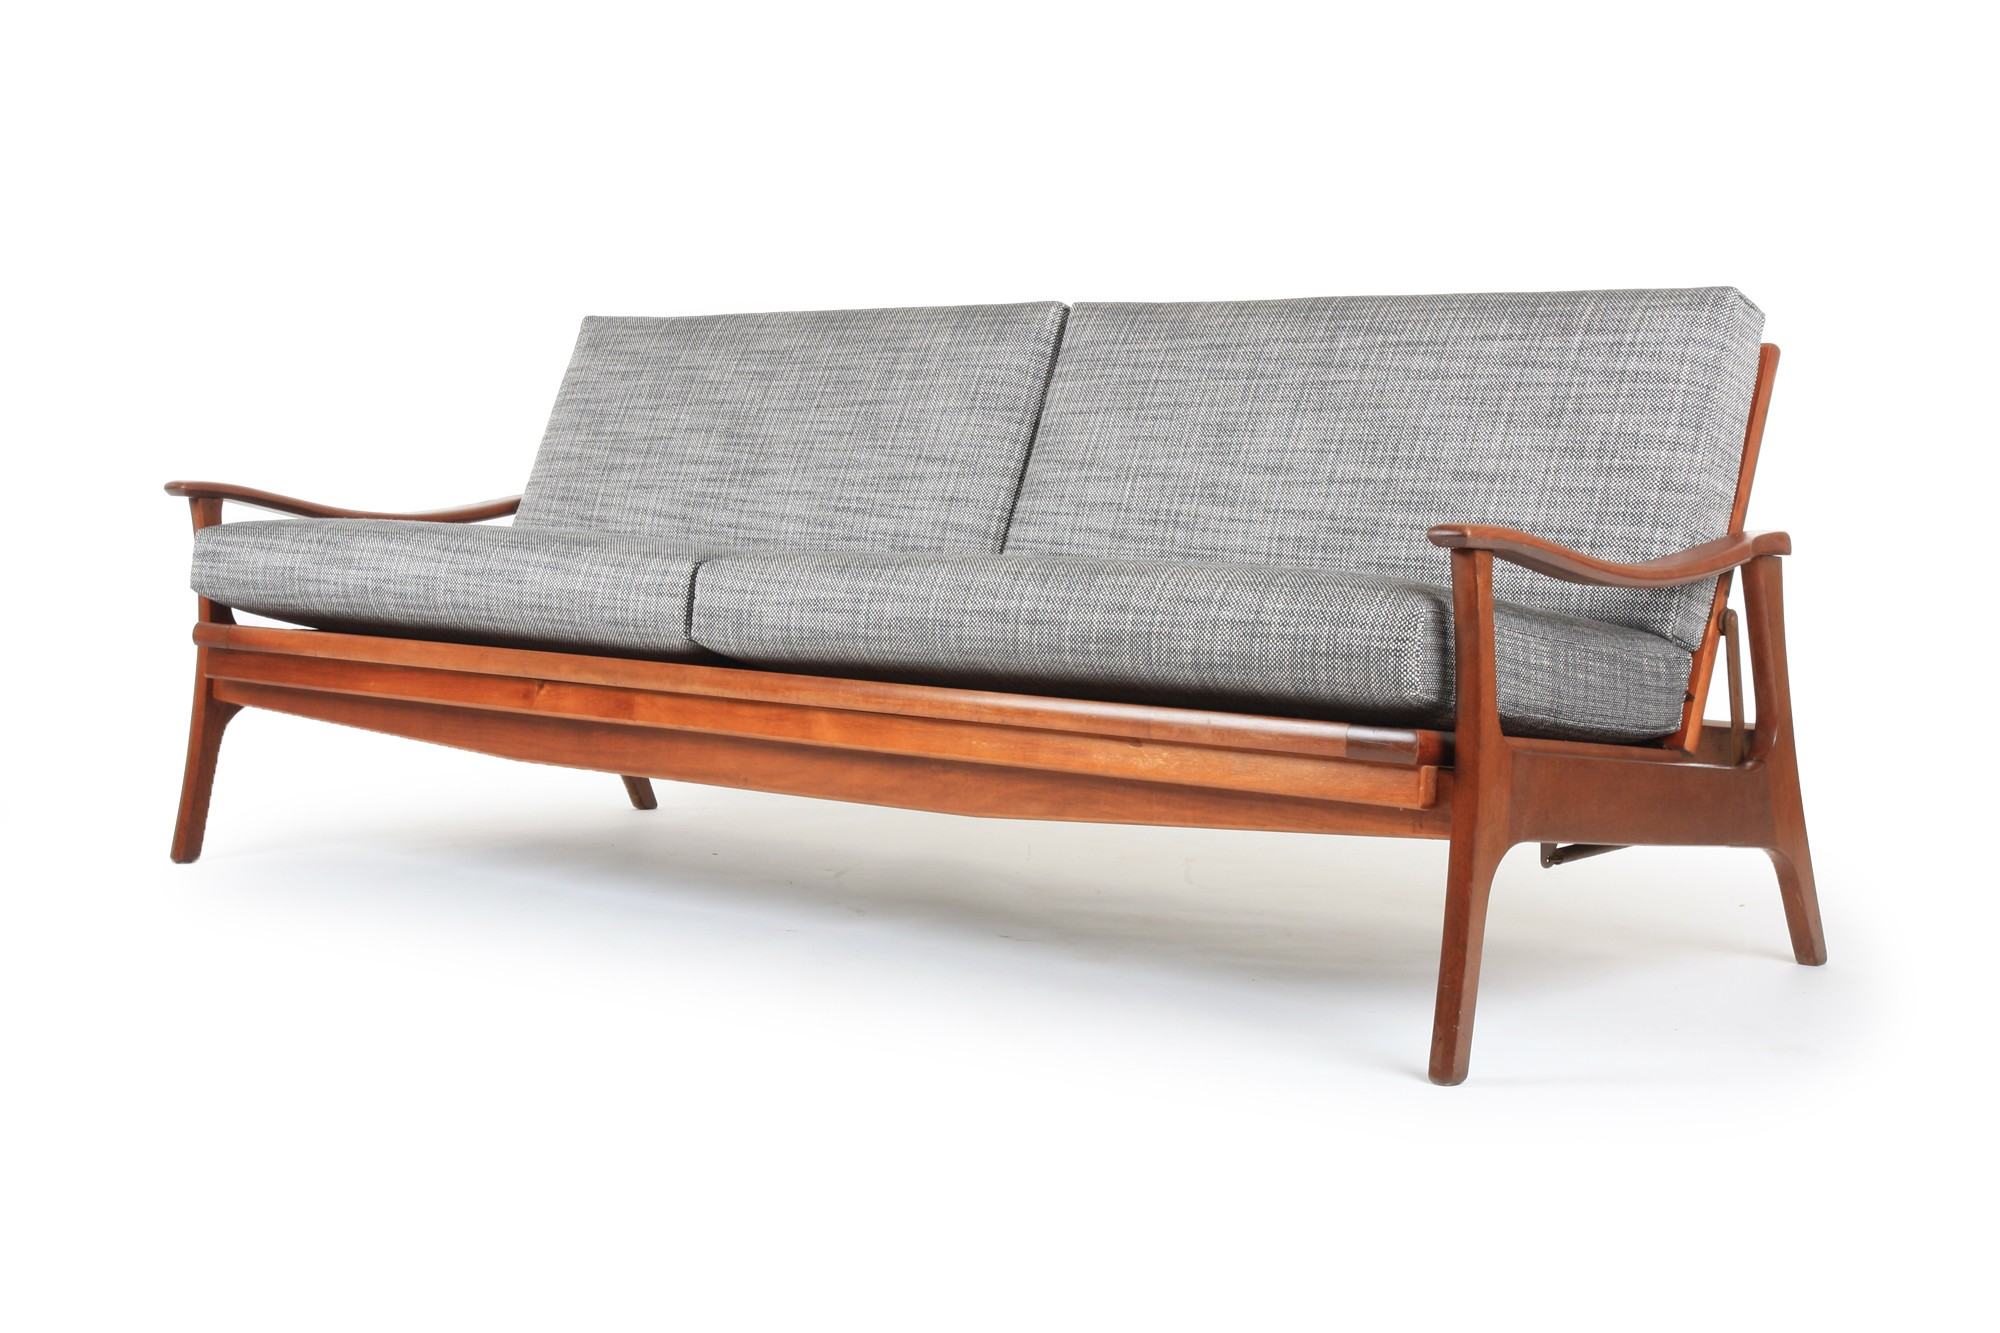 100 retro daybed teal sofa daybed by bert liebert wilhelm for knoll mid century 60 u0027s - Daybeds for small spaces gallery ...